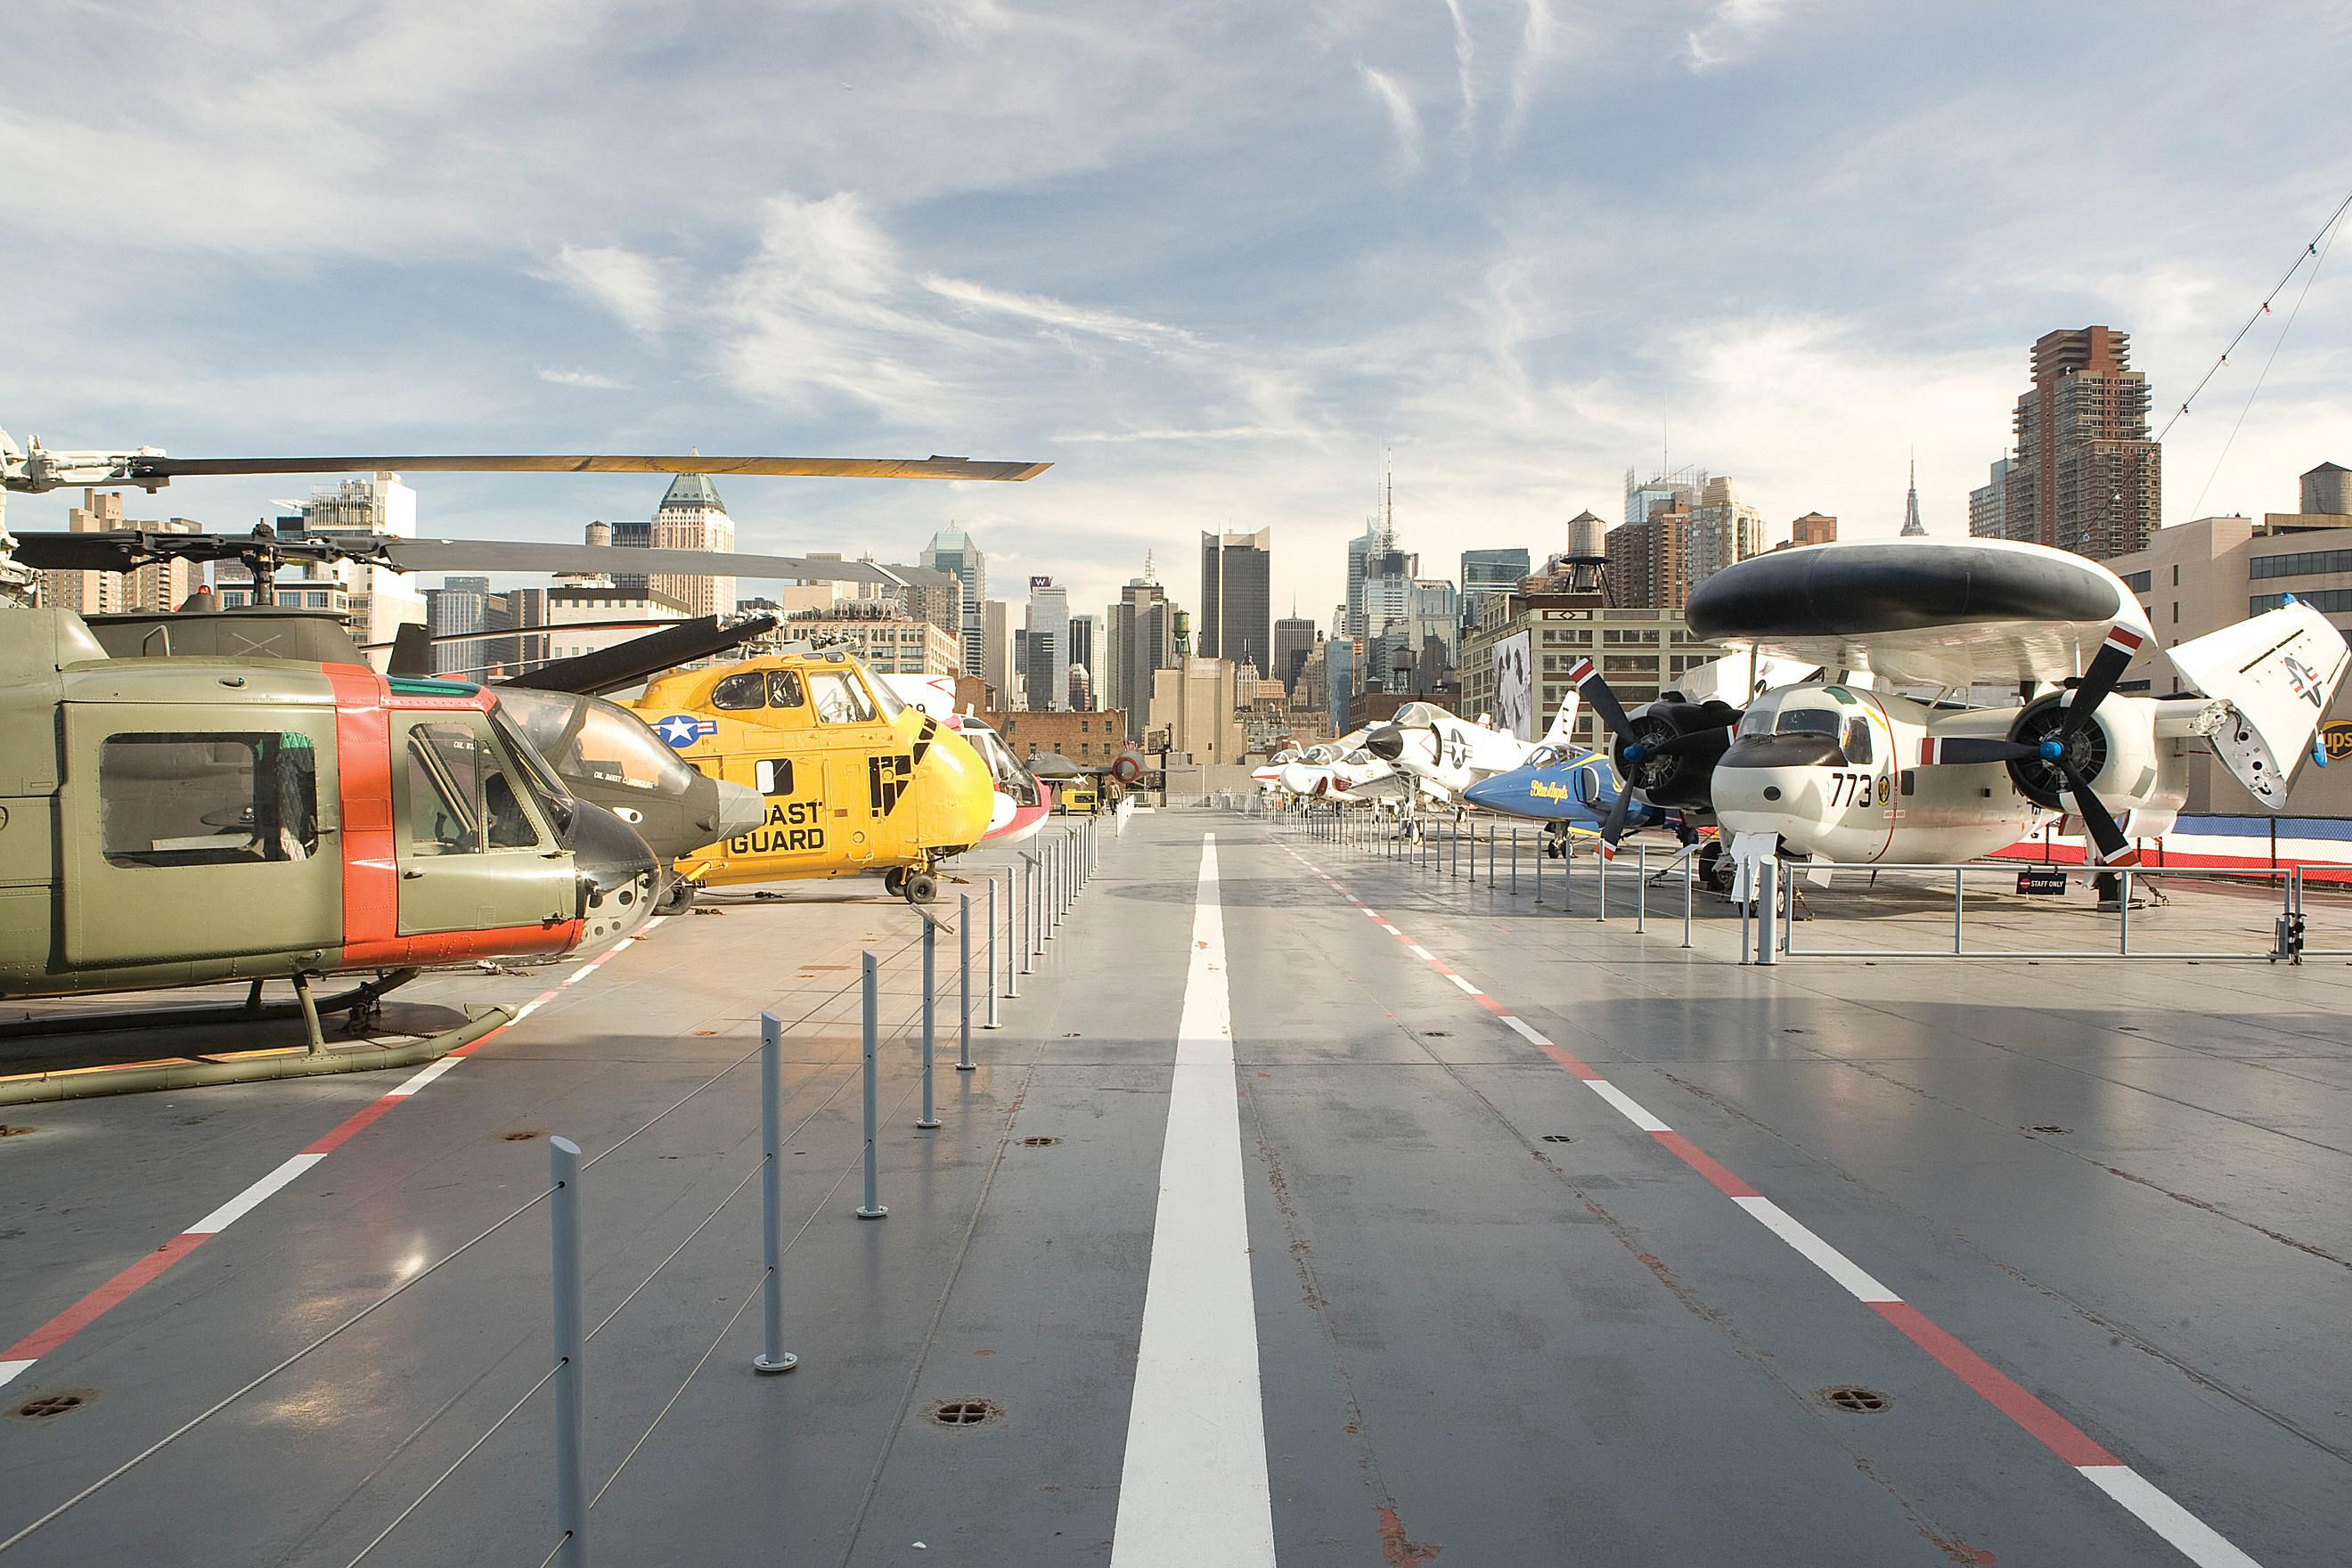 Intrepid Sea, Air & Space Museum Wows w/Space Shuttle, Submarine, More